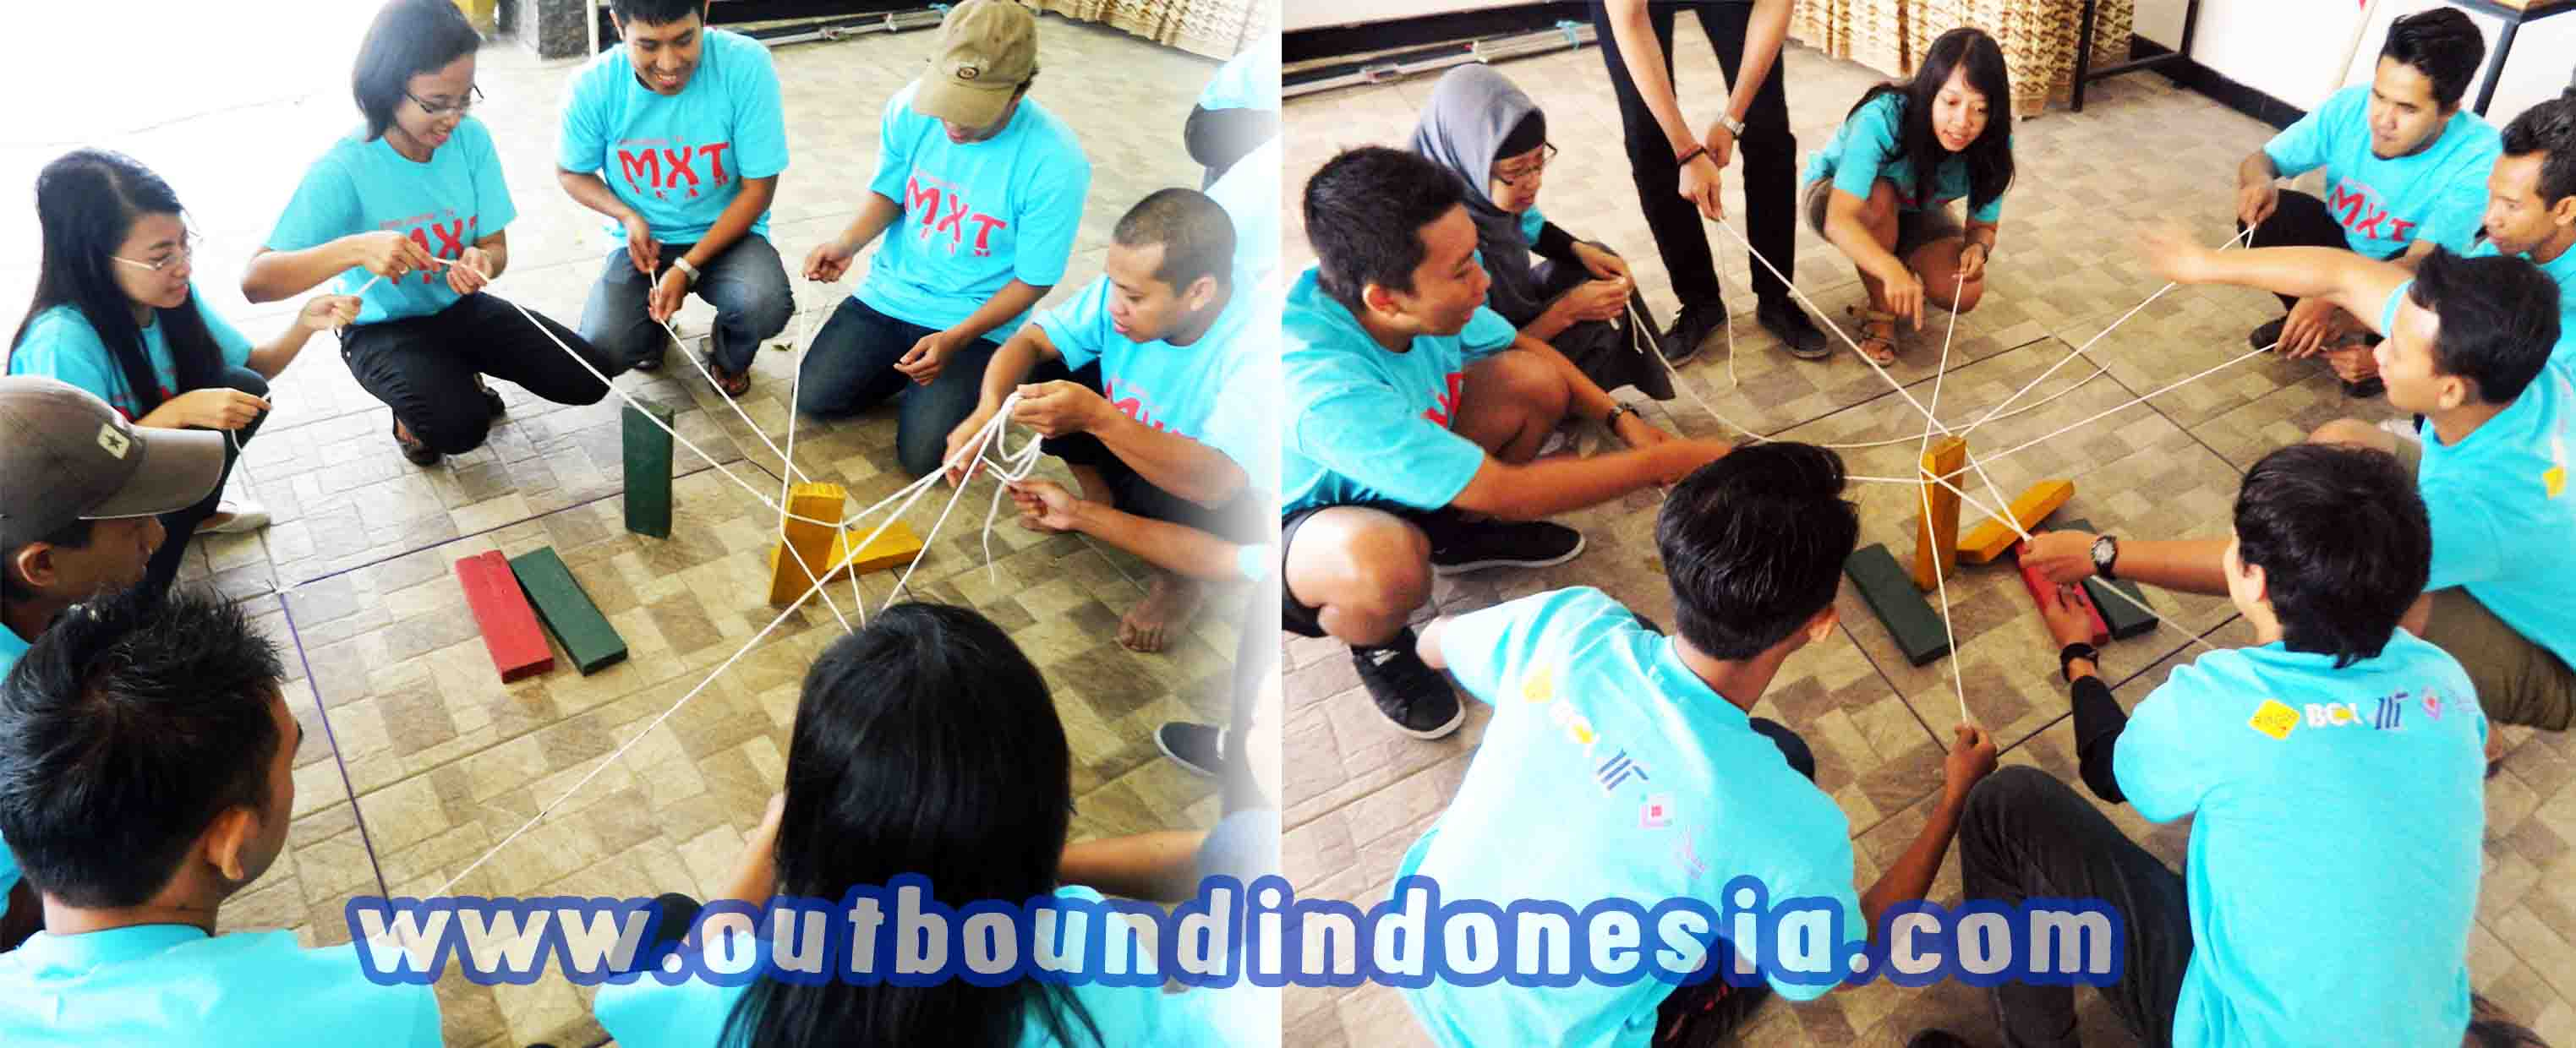 outbound malang murah, www.outboundindonesia.com, 0341 5425754